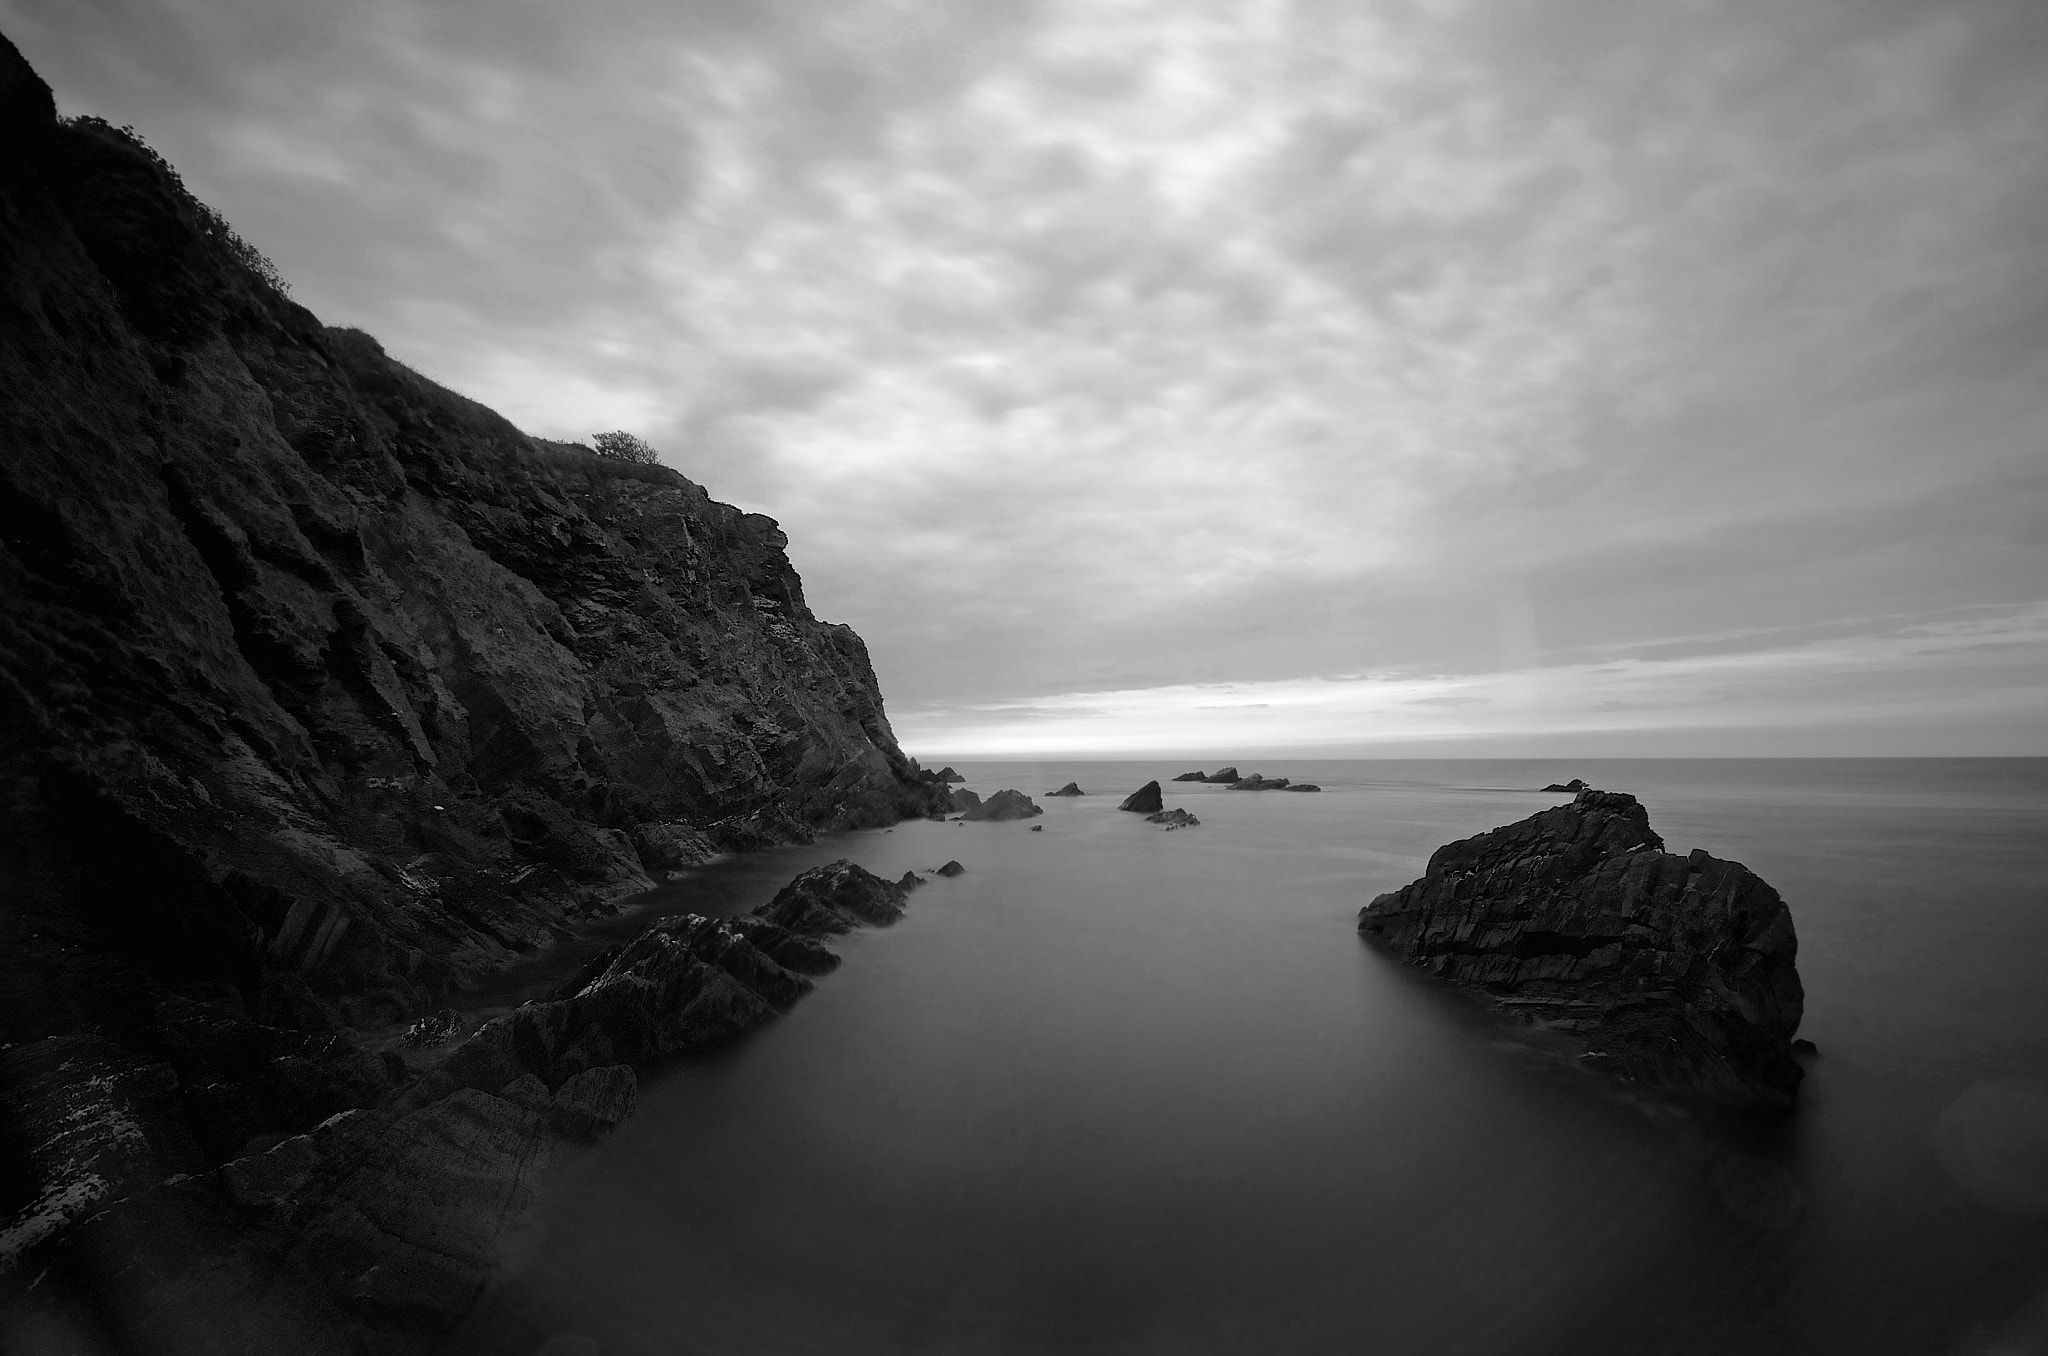 Photograph Ilfracombe by Thom Bartley on 500px